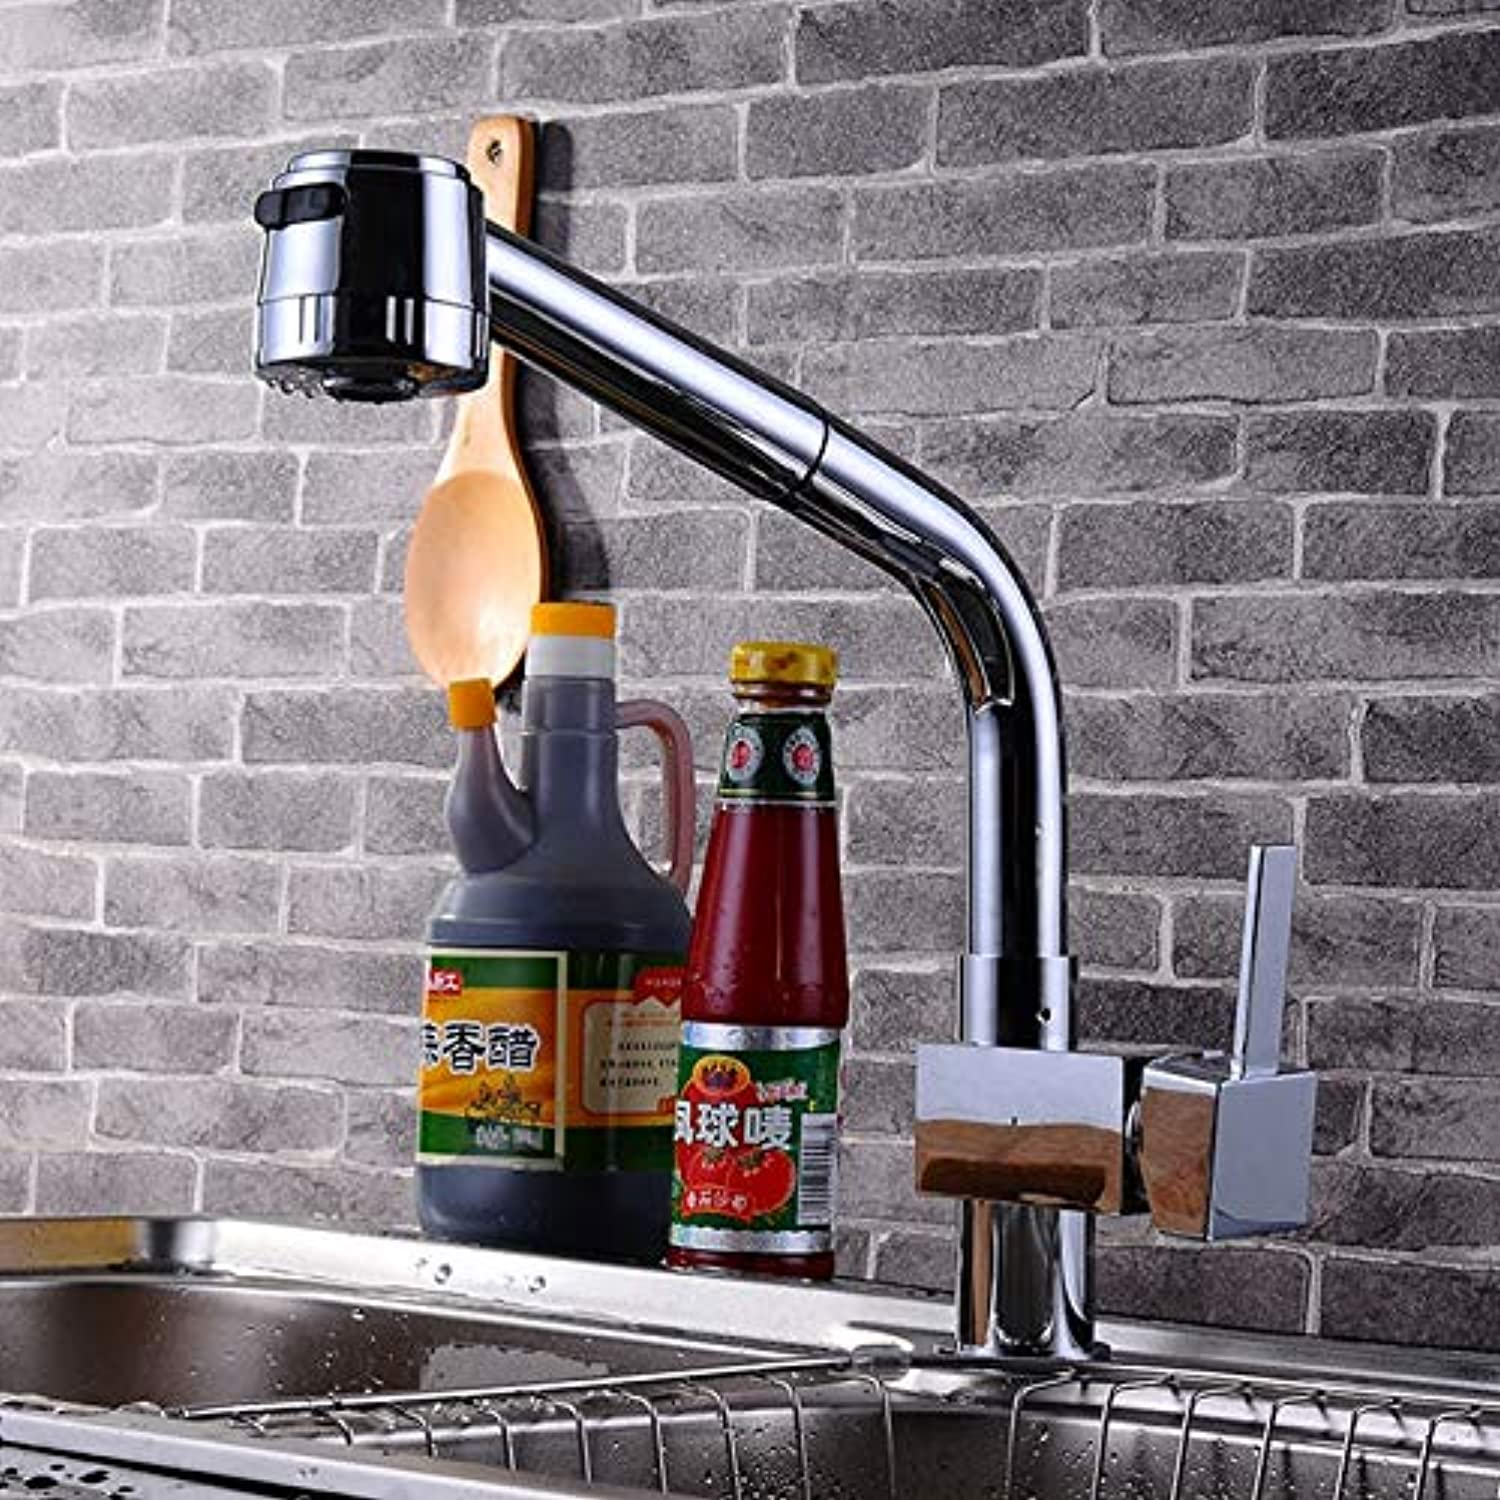 Decorry Boutique Sanitary Ware Deck Mounted Kitchen Faucet with Top Quality Solid Brass Kitchen Faucet and Hot Cold Tap